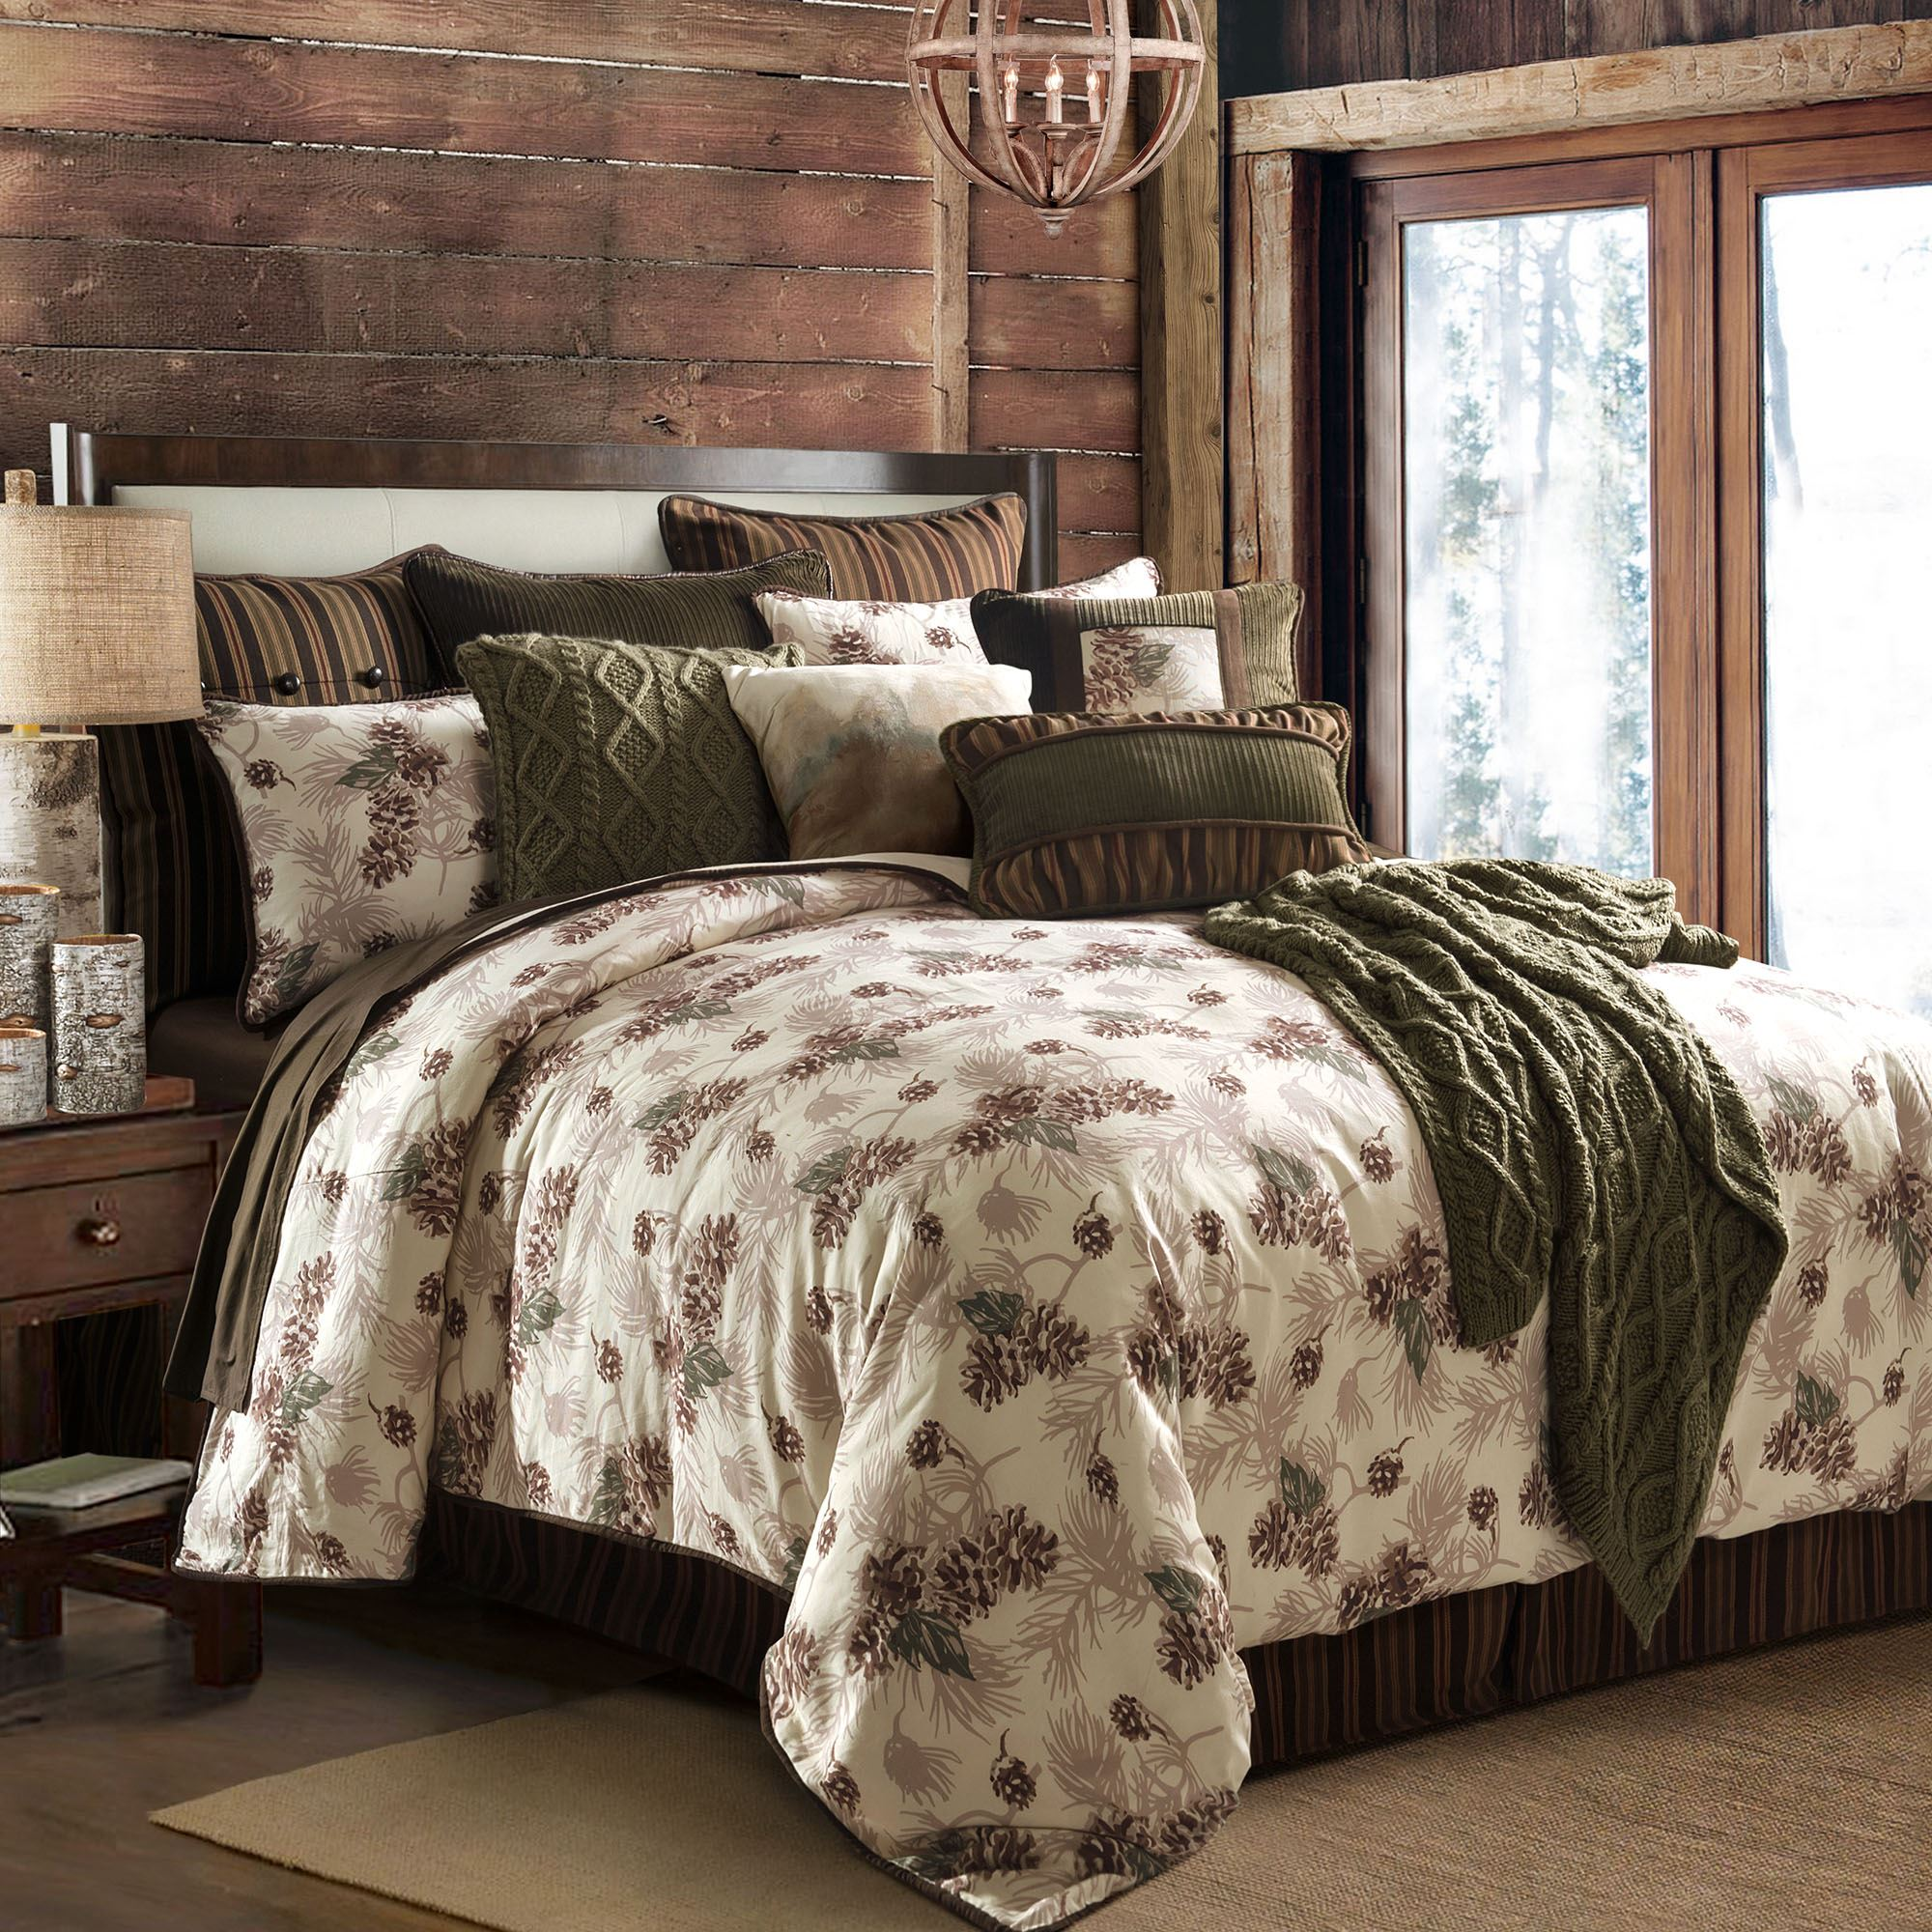 p set comforter morning chocolate comforters plaid bedding montana rustic